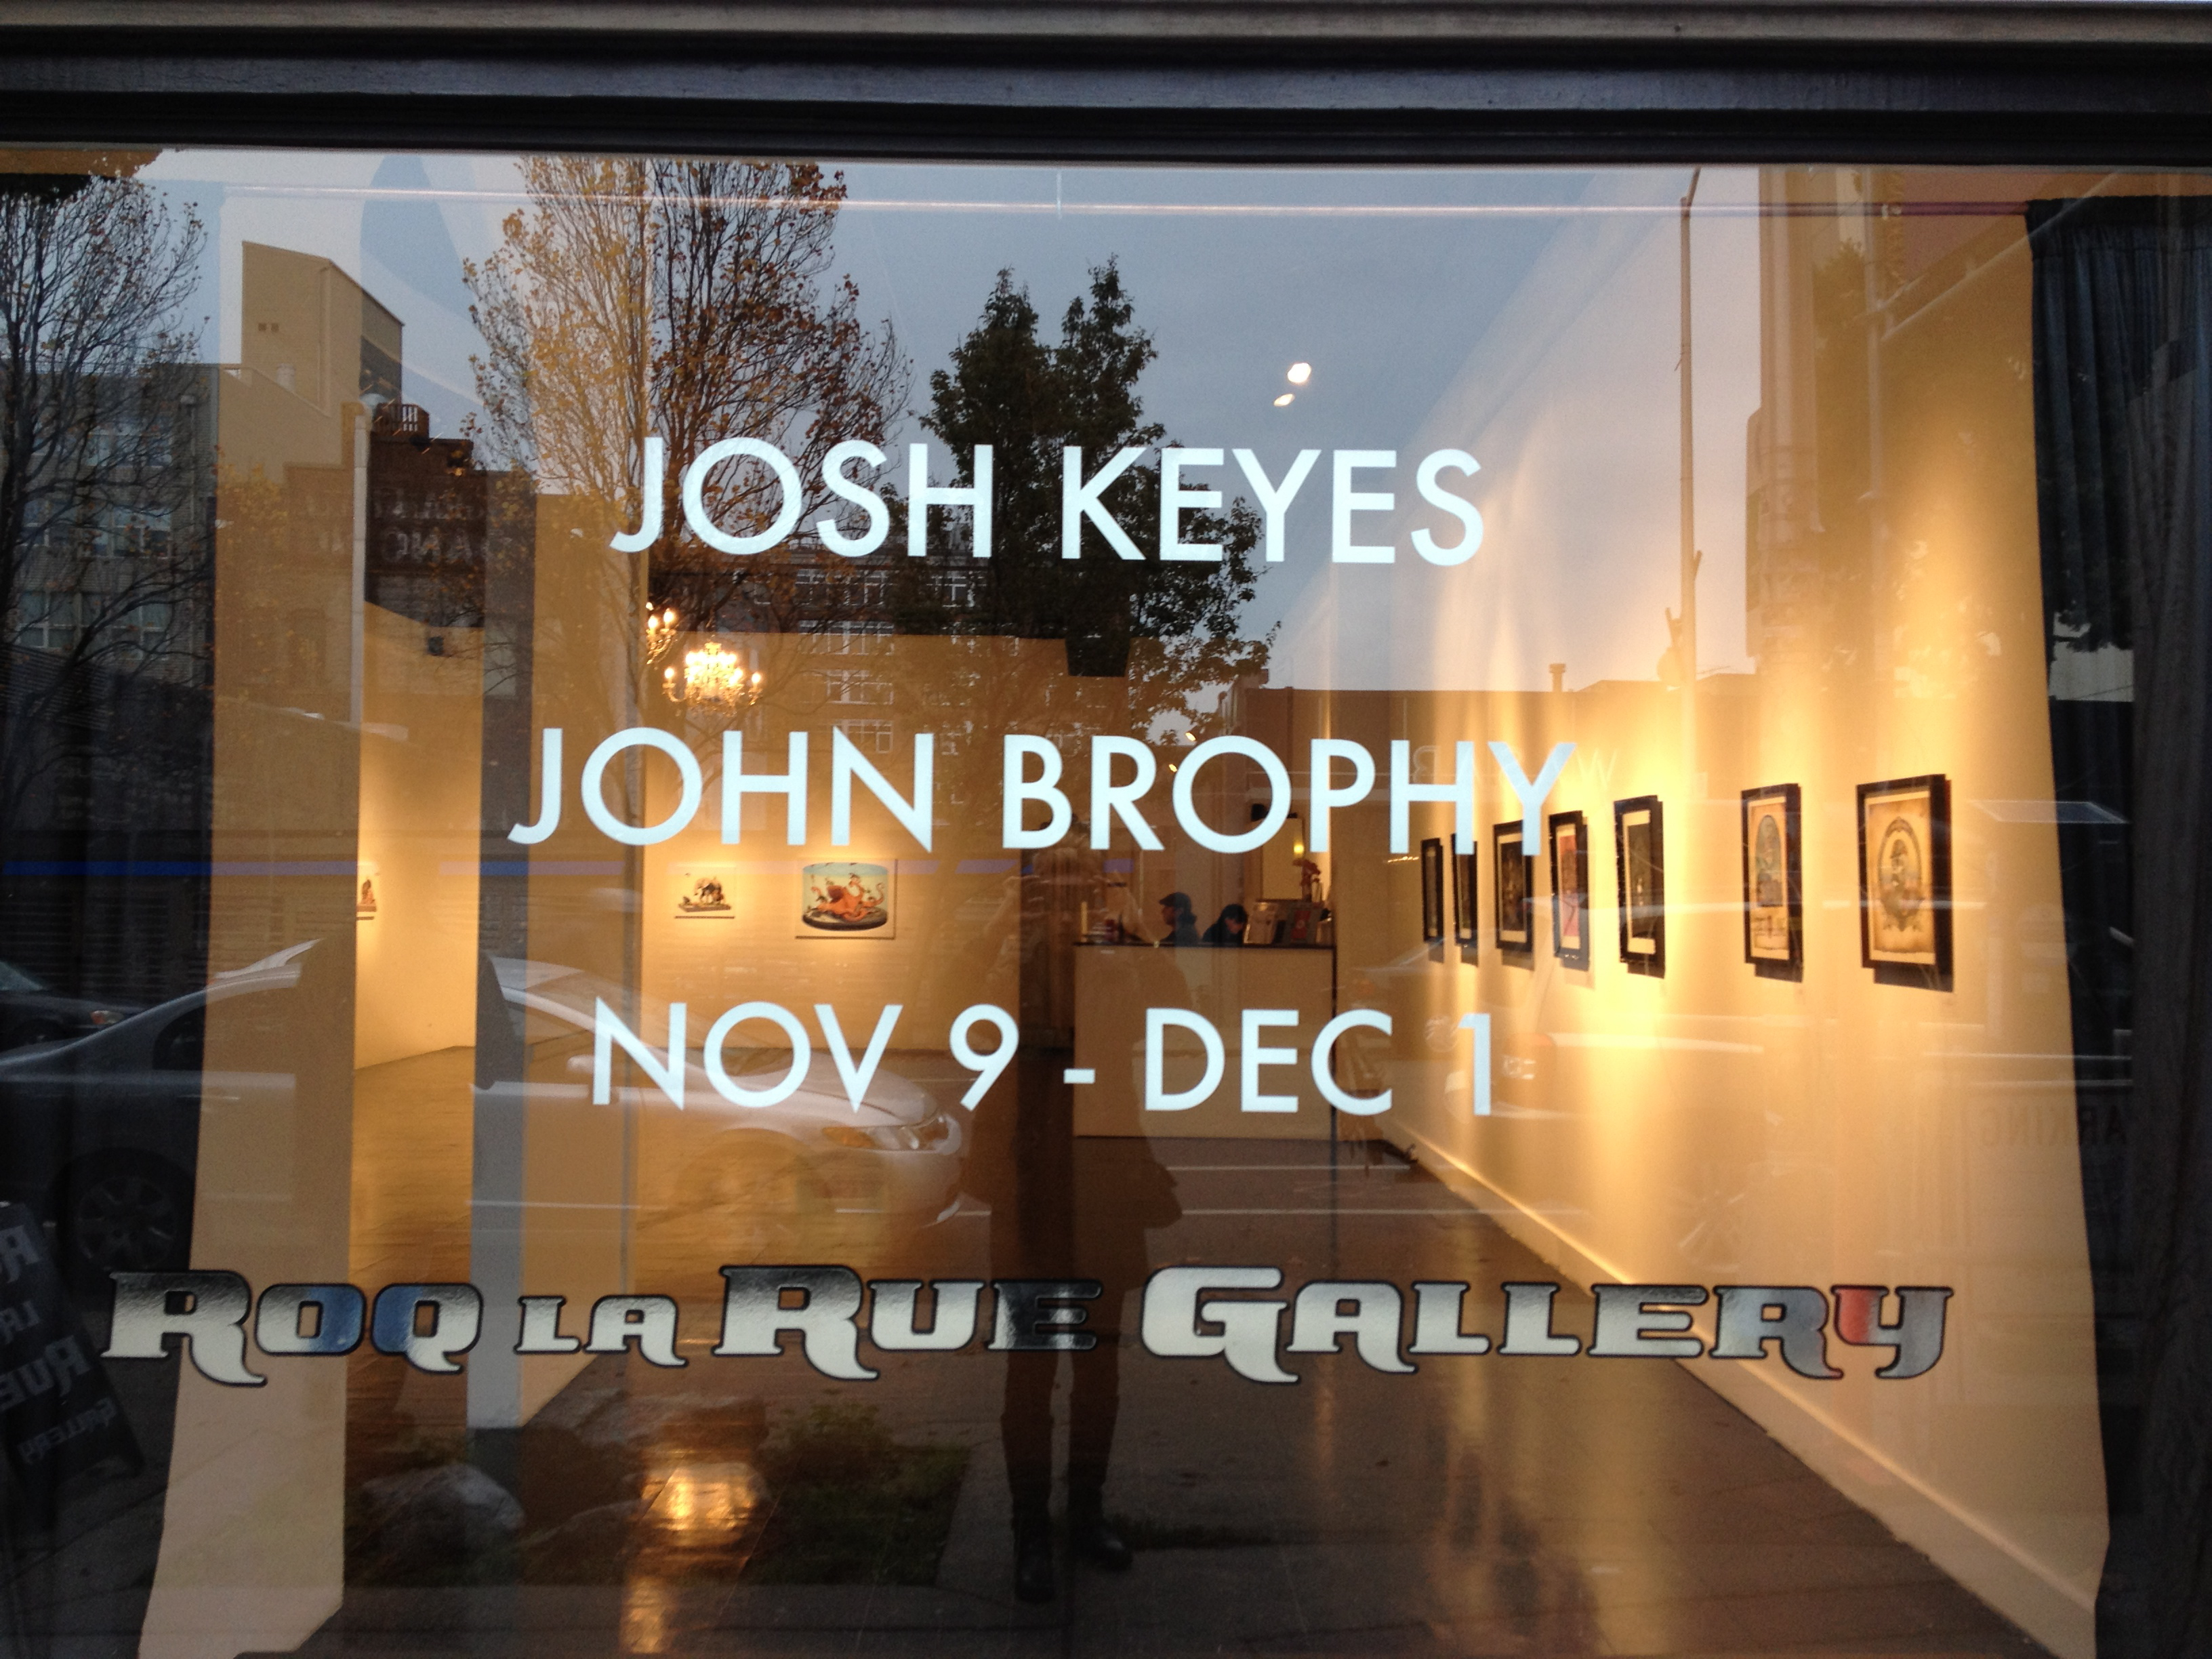 Josh Keyes and John Brophy at Roq La Rue Gallery, November 2012